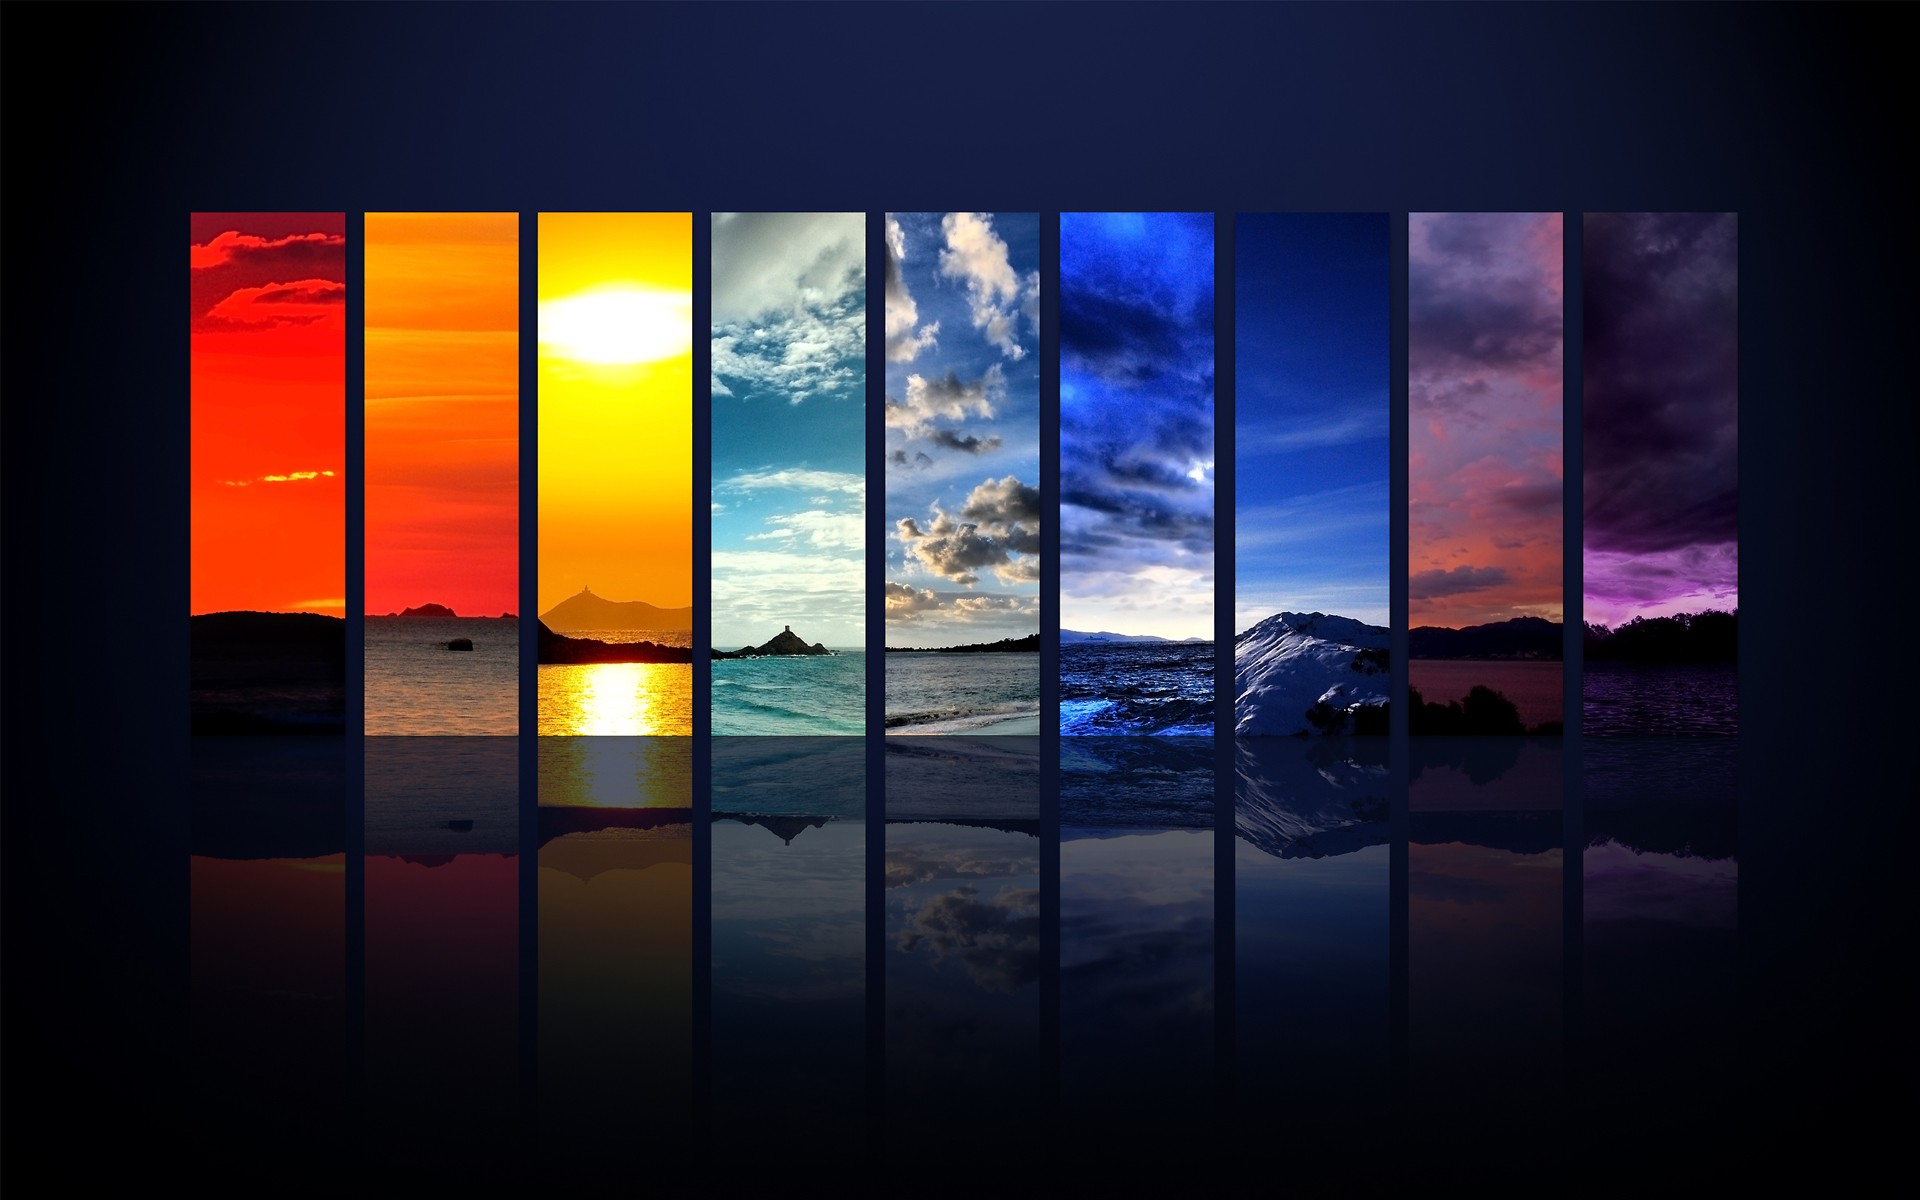 67 Free Backgrounds For Pc On Wallpapersafari